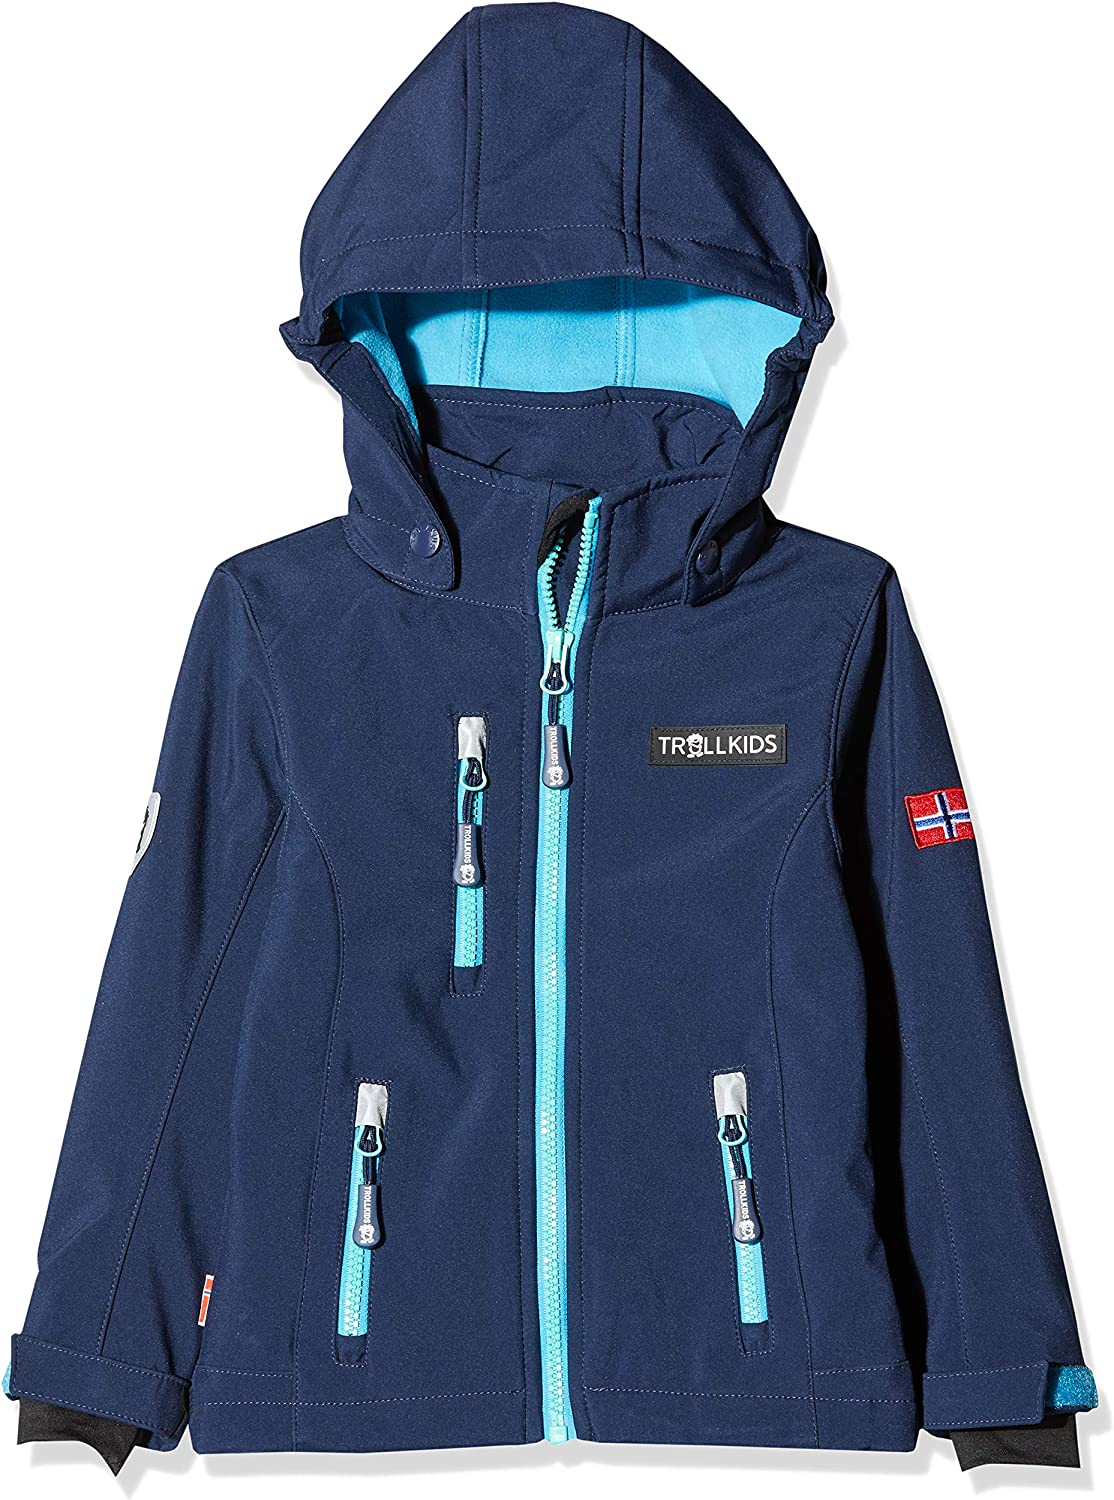 (2-3 (98 EU), navy turquoise mint) - Trollkids Girls' Hooded Long Track Jacket